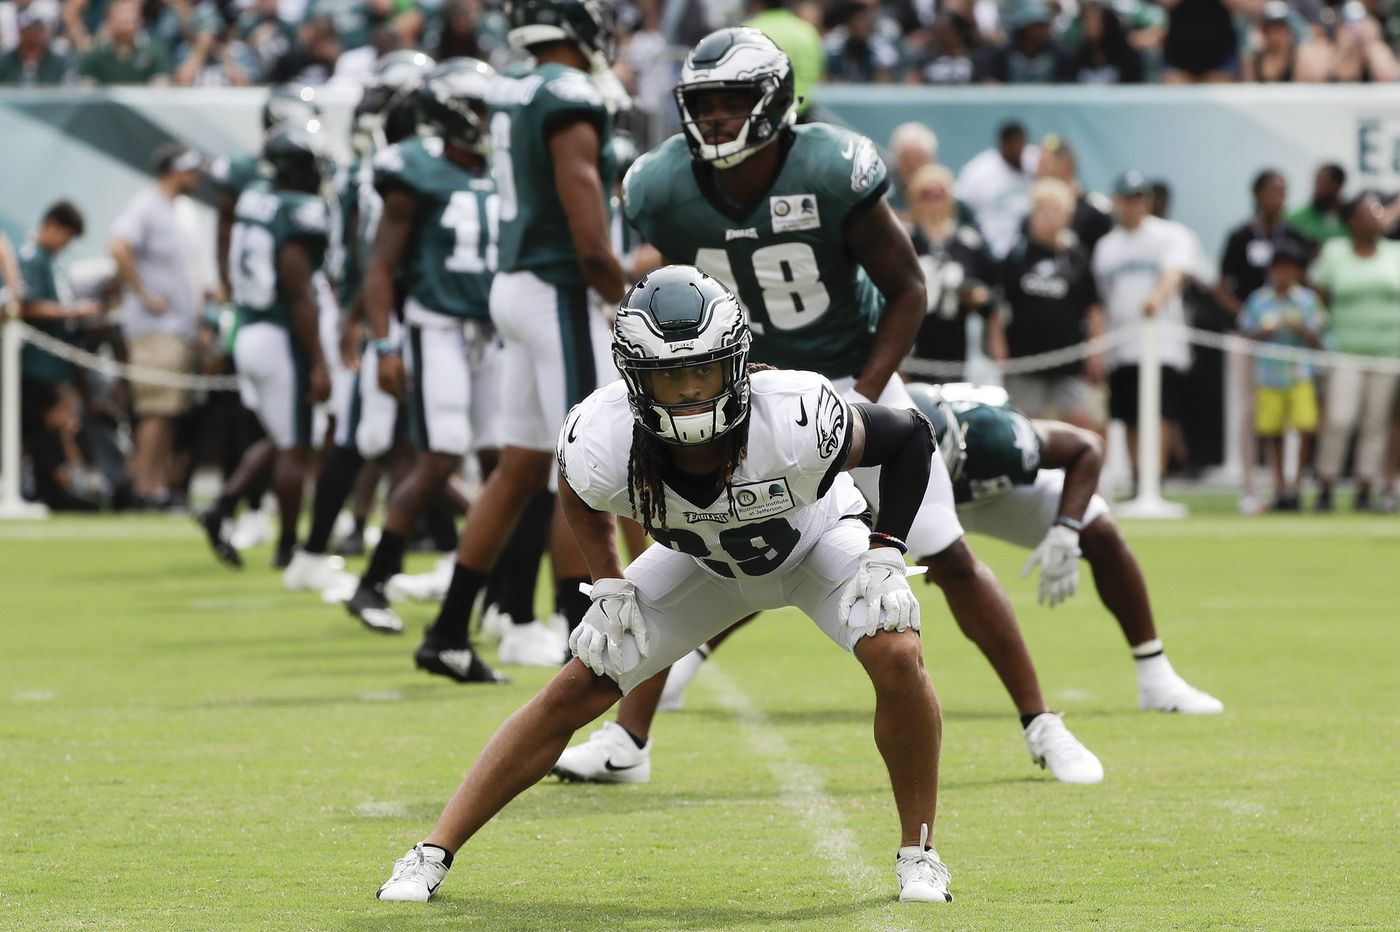 Avonte Maddox, the Eagles' smallest corner, is finding ways to stand out